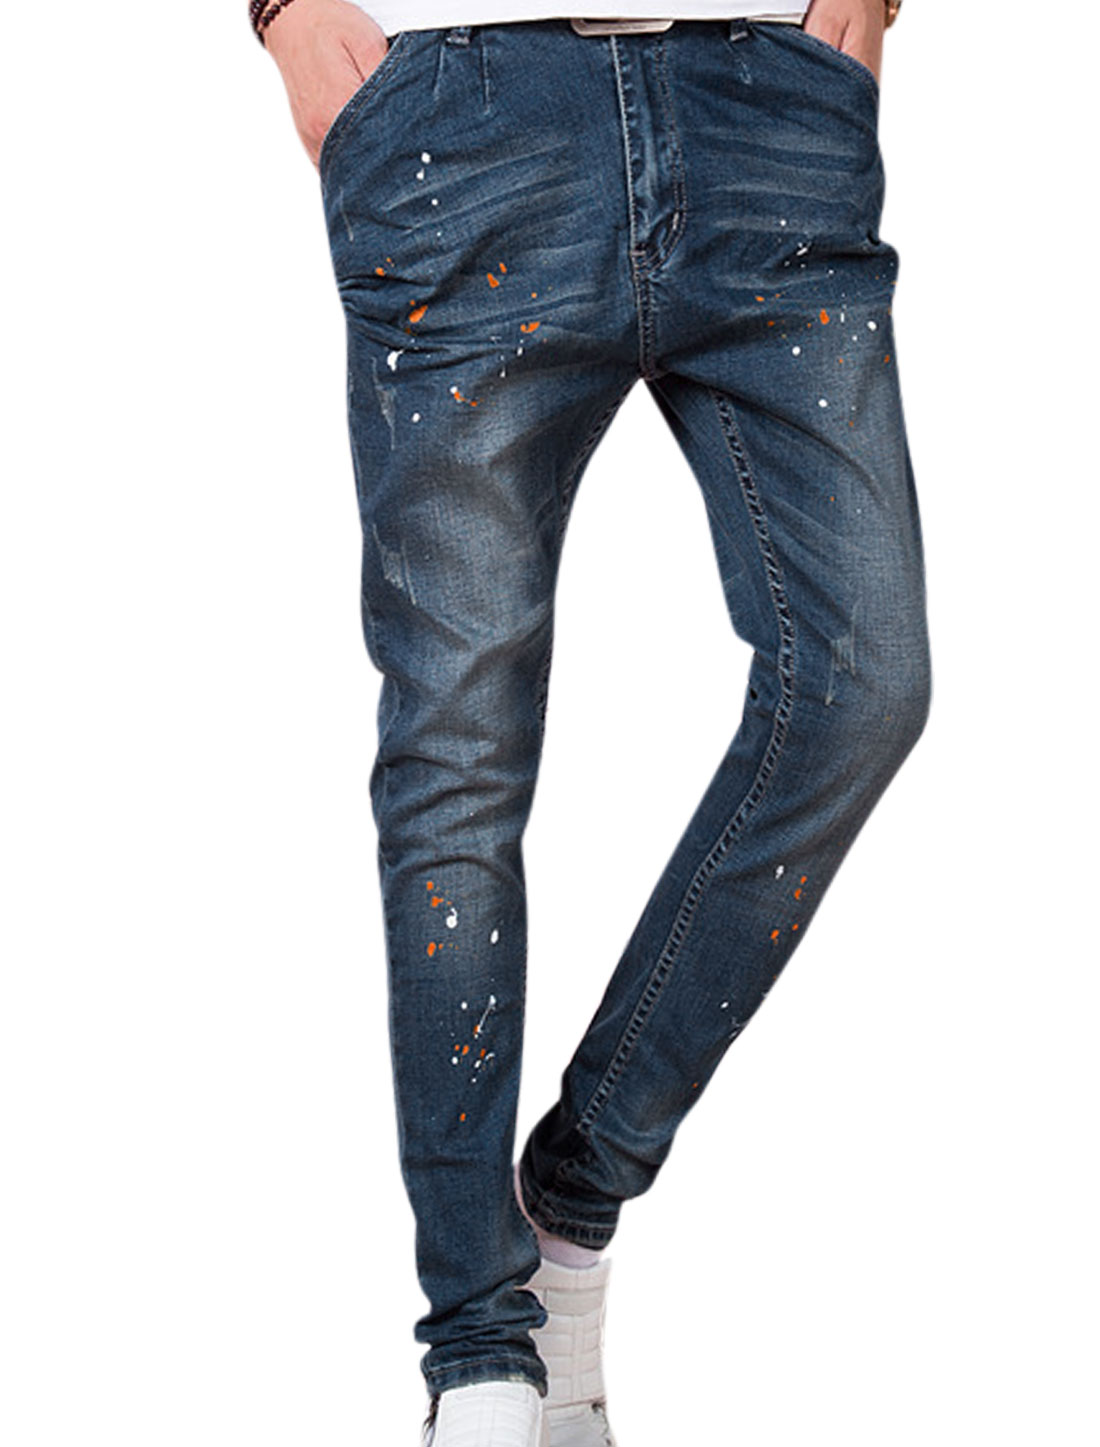 Natural Waist Printed Destroyed Design Casual Jeans for Men Blue W30